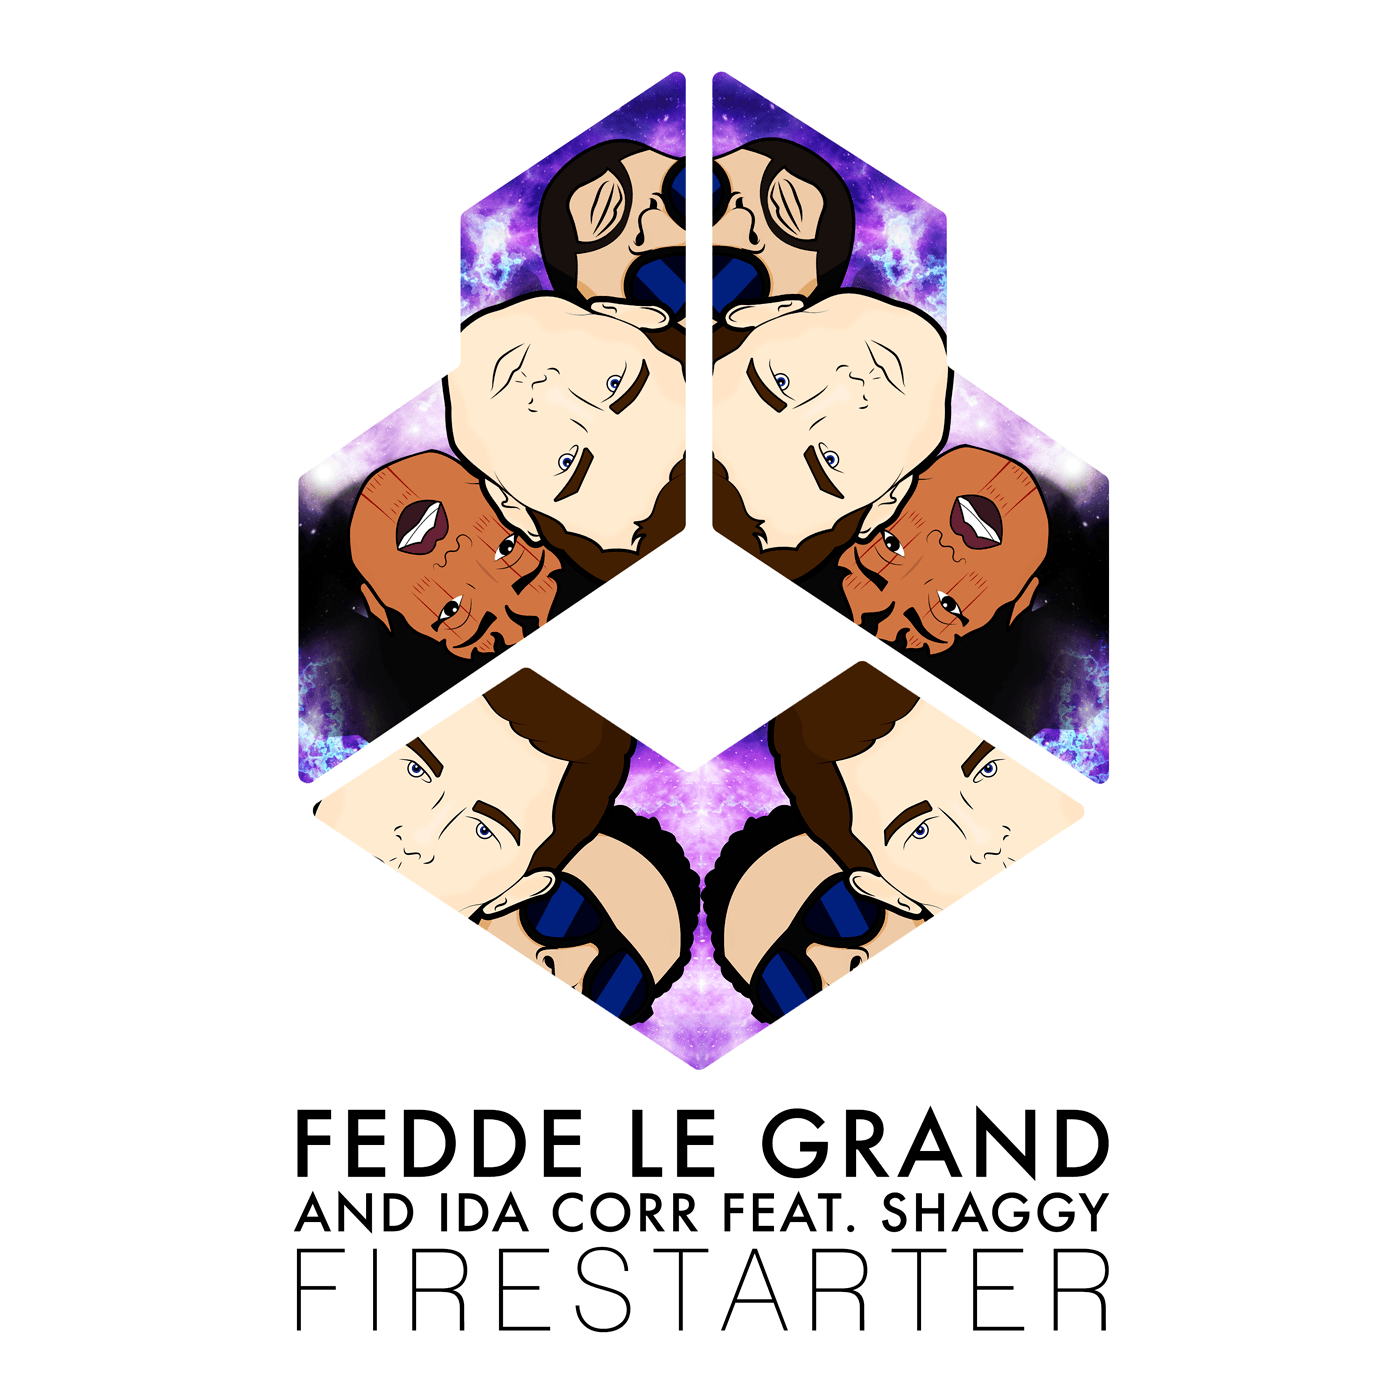 FEDDE LE GRAND AND IDA CORR FEAT. SHAGGY – FIRESTARTER [OUT NOW ON DARKLIGHT RECORDINGS]